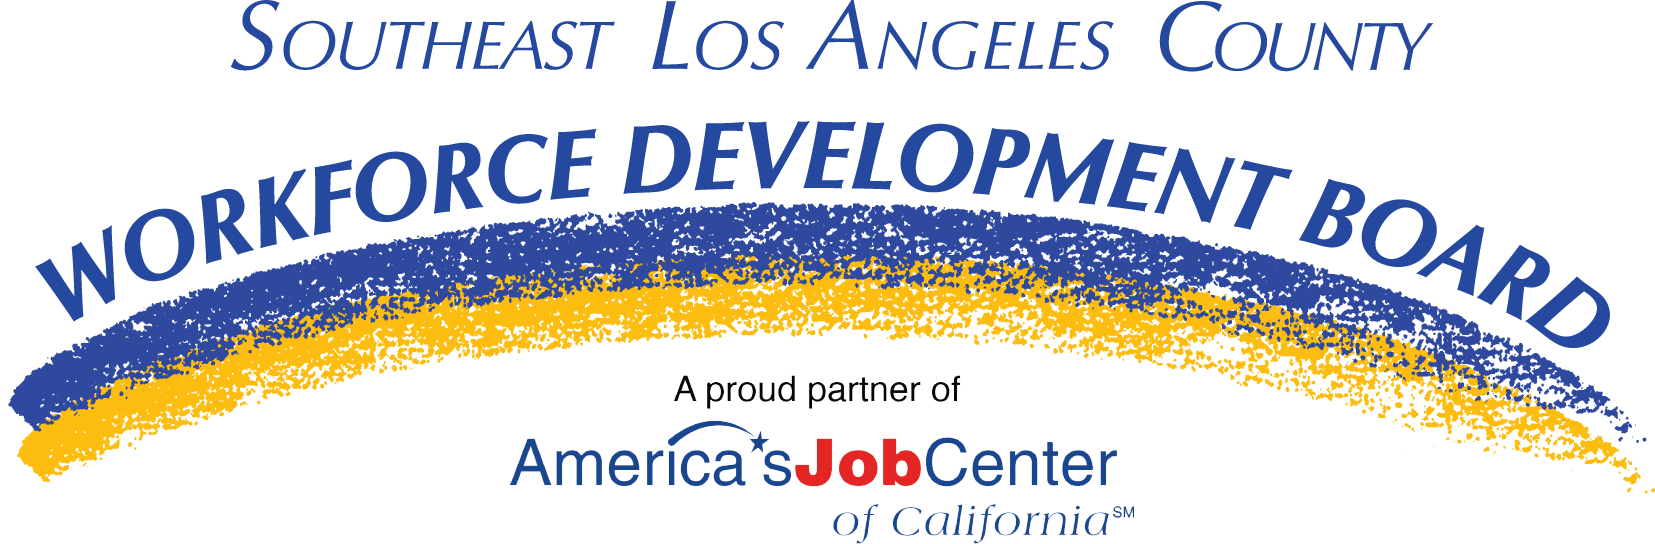 Southeast Los Angeles Workforce Development Broad